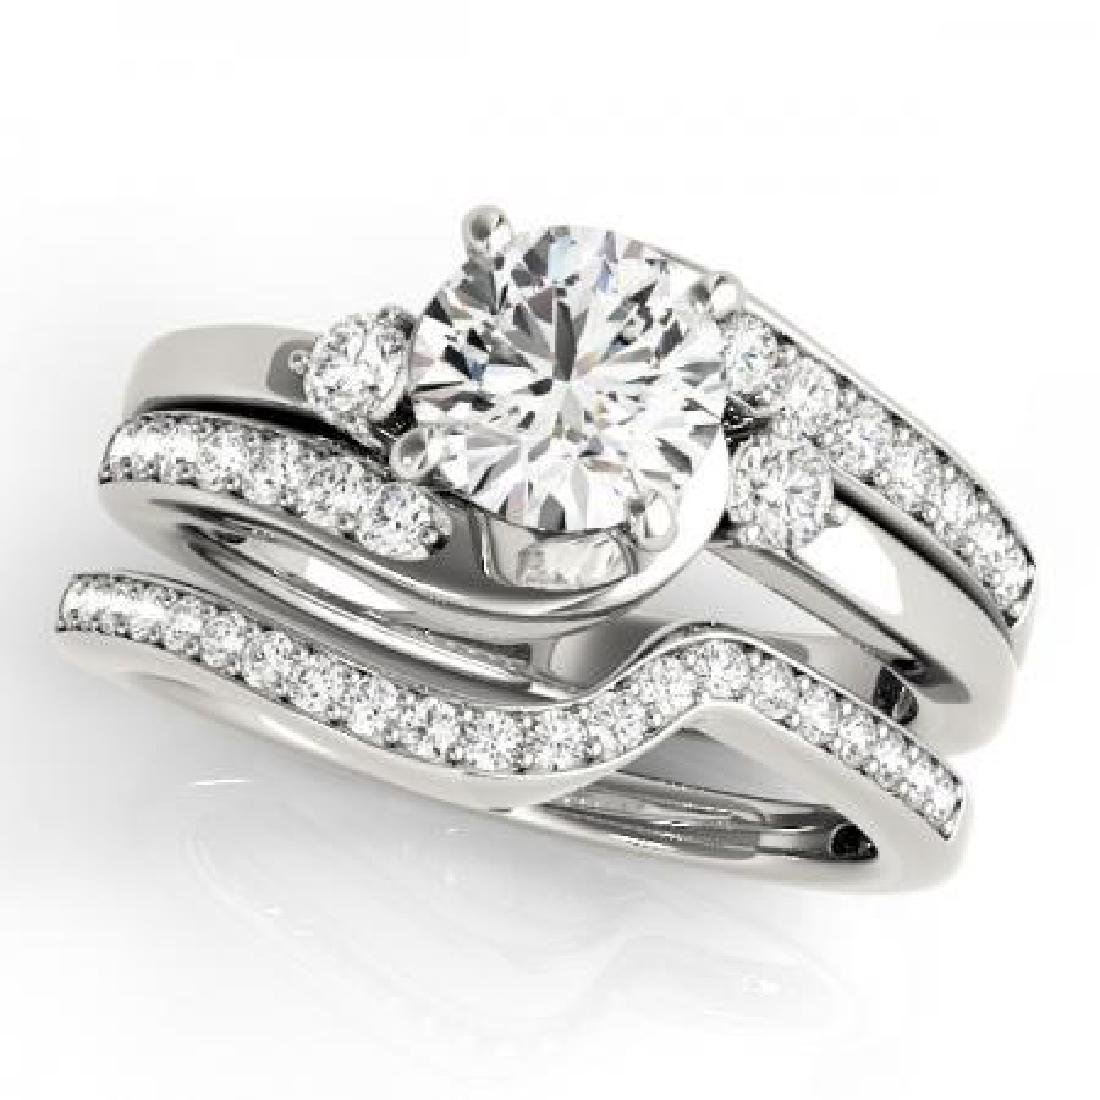 CERTIFIED PLATINUM 1.36 CT G-H/VS-SI1 DIAMOND BRIDAL SE